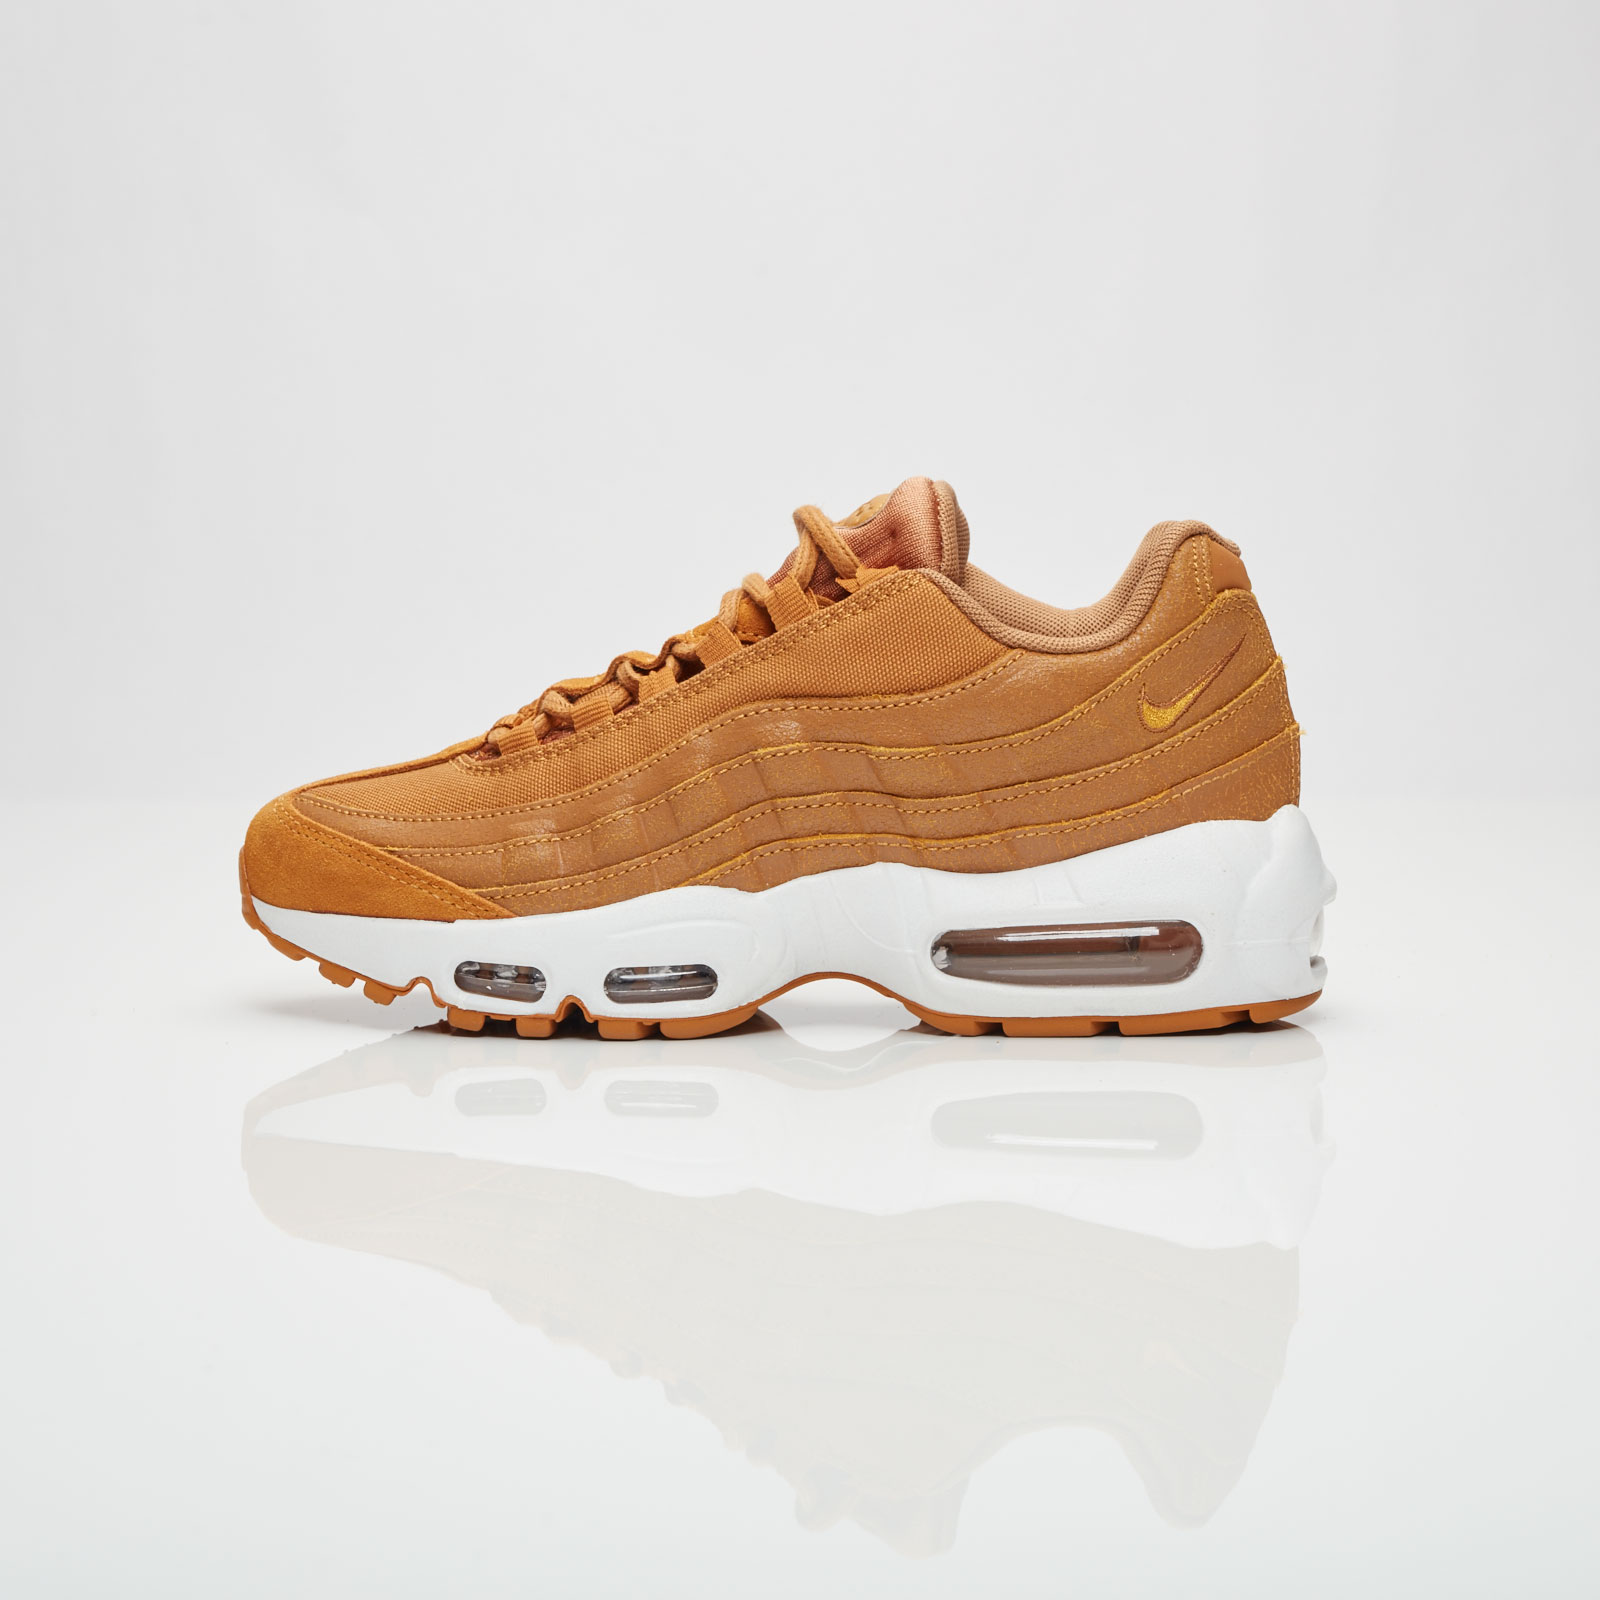 new arrival b08a9 e3acf Nike Wmns Air Max 95 Premium - 807443-700 - Sneakersnstuff   sneakers    streetwear online since 1999